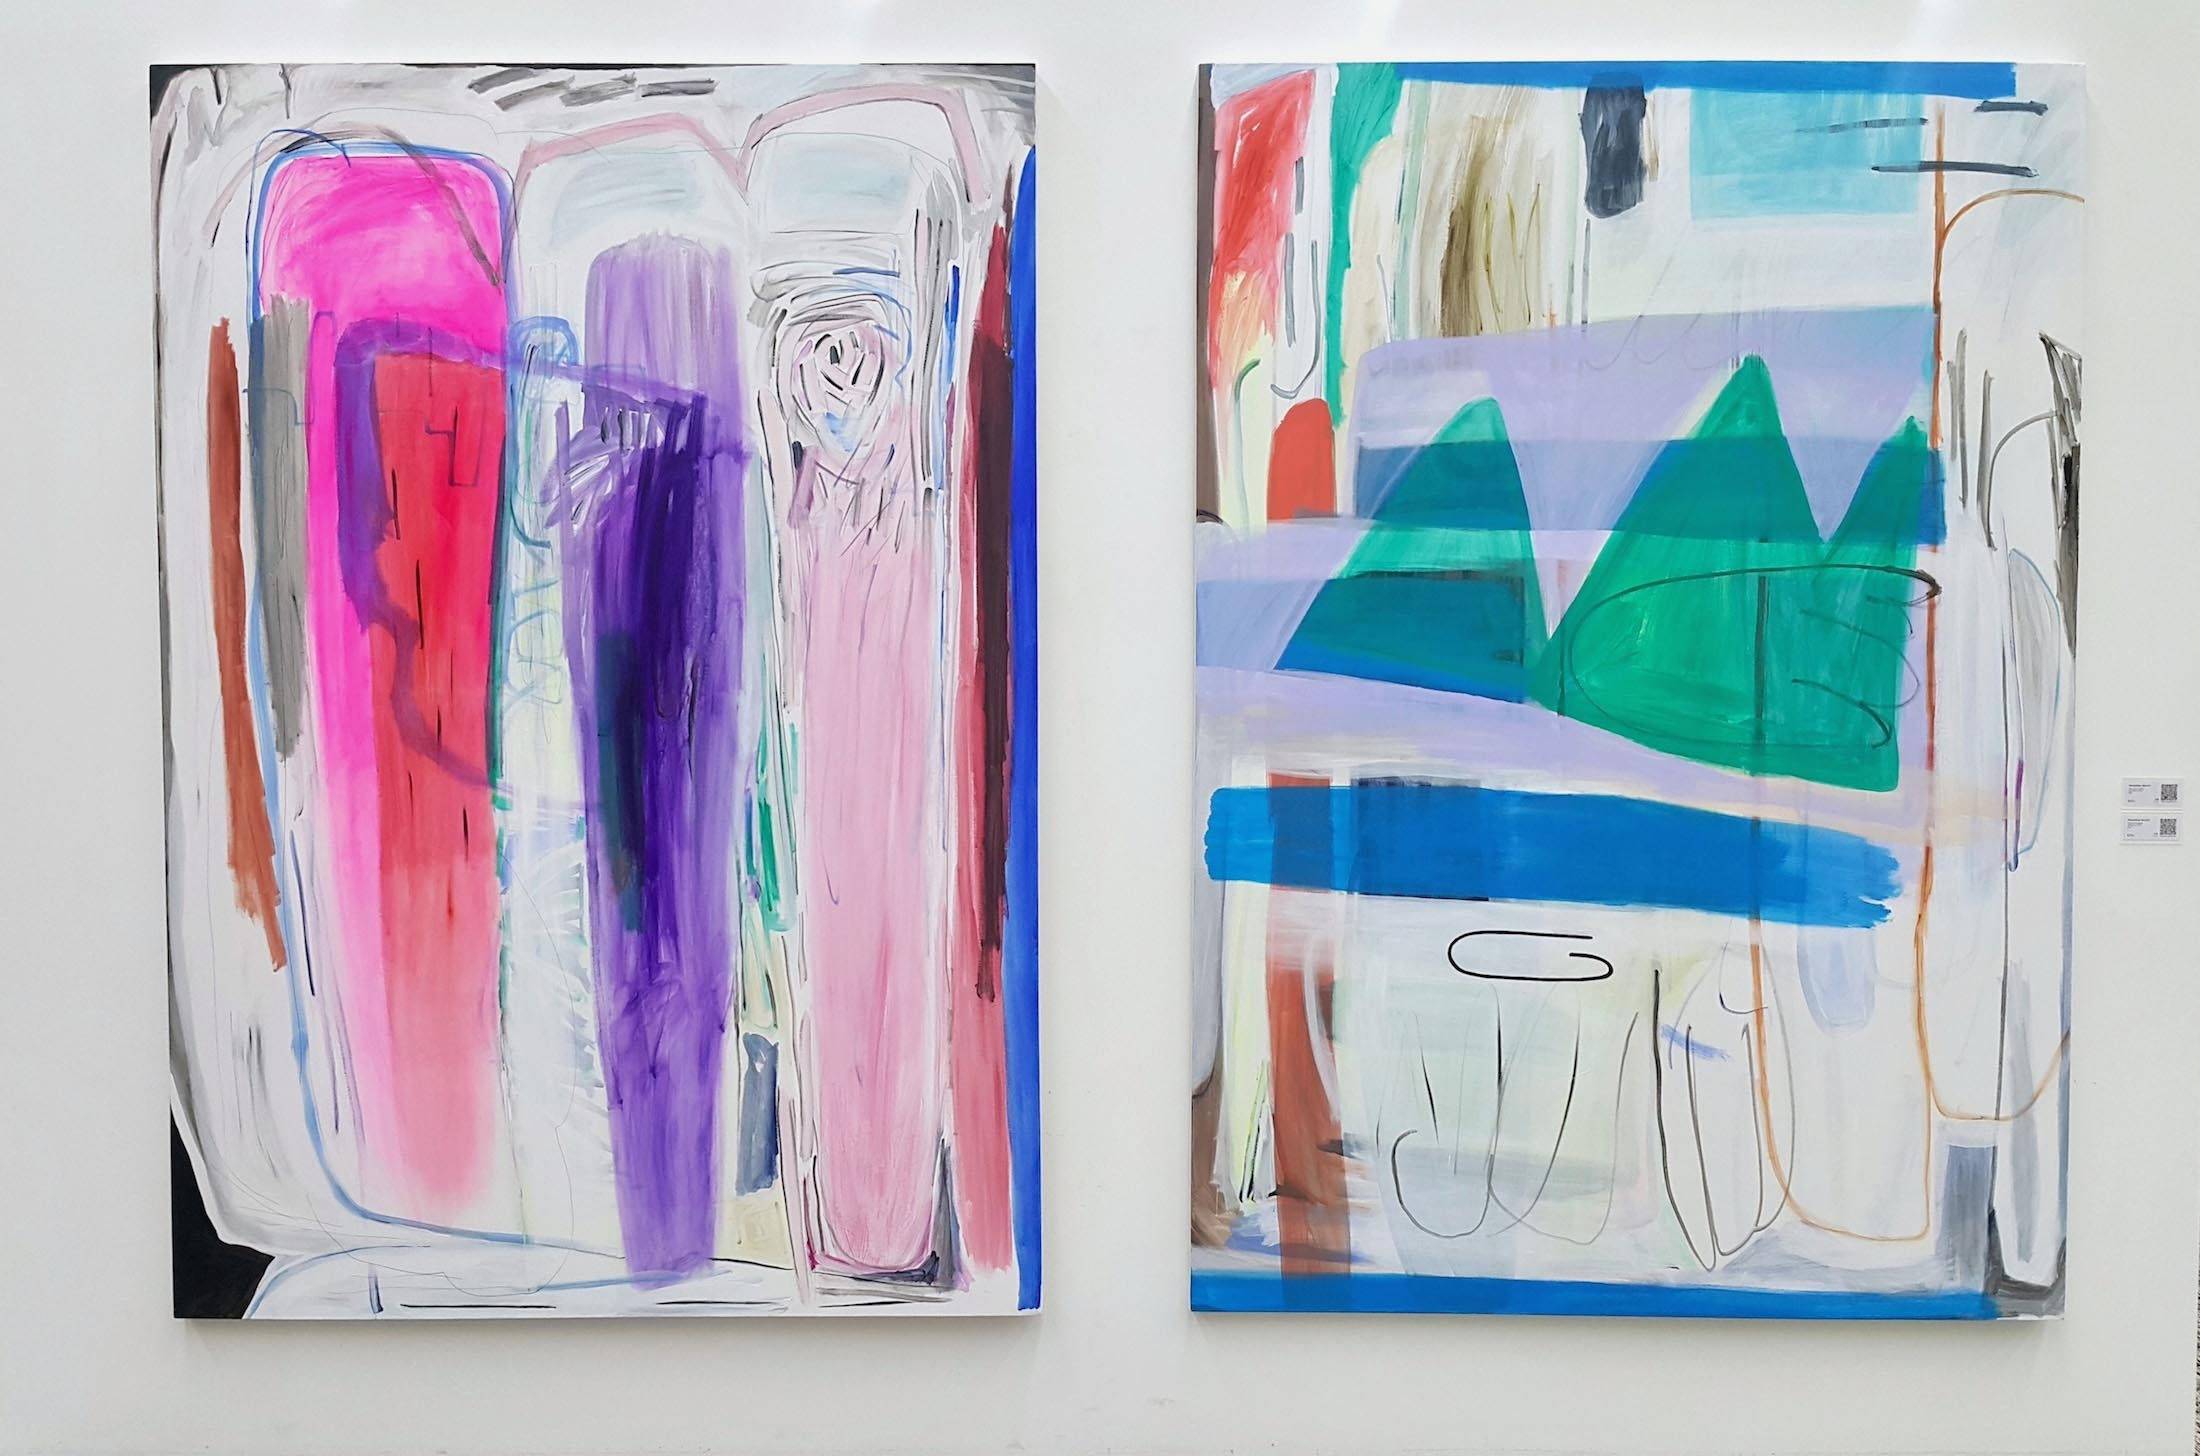 Jae Jo, Dismantling Mass132(right)Dismantling Mass131(left),2018,acrylic on canvas,200x140cm